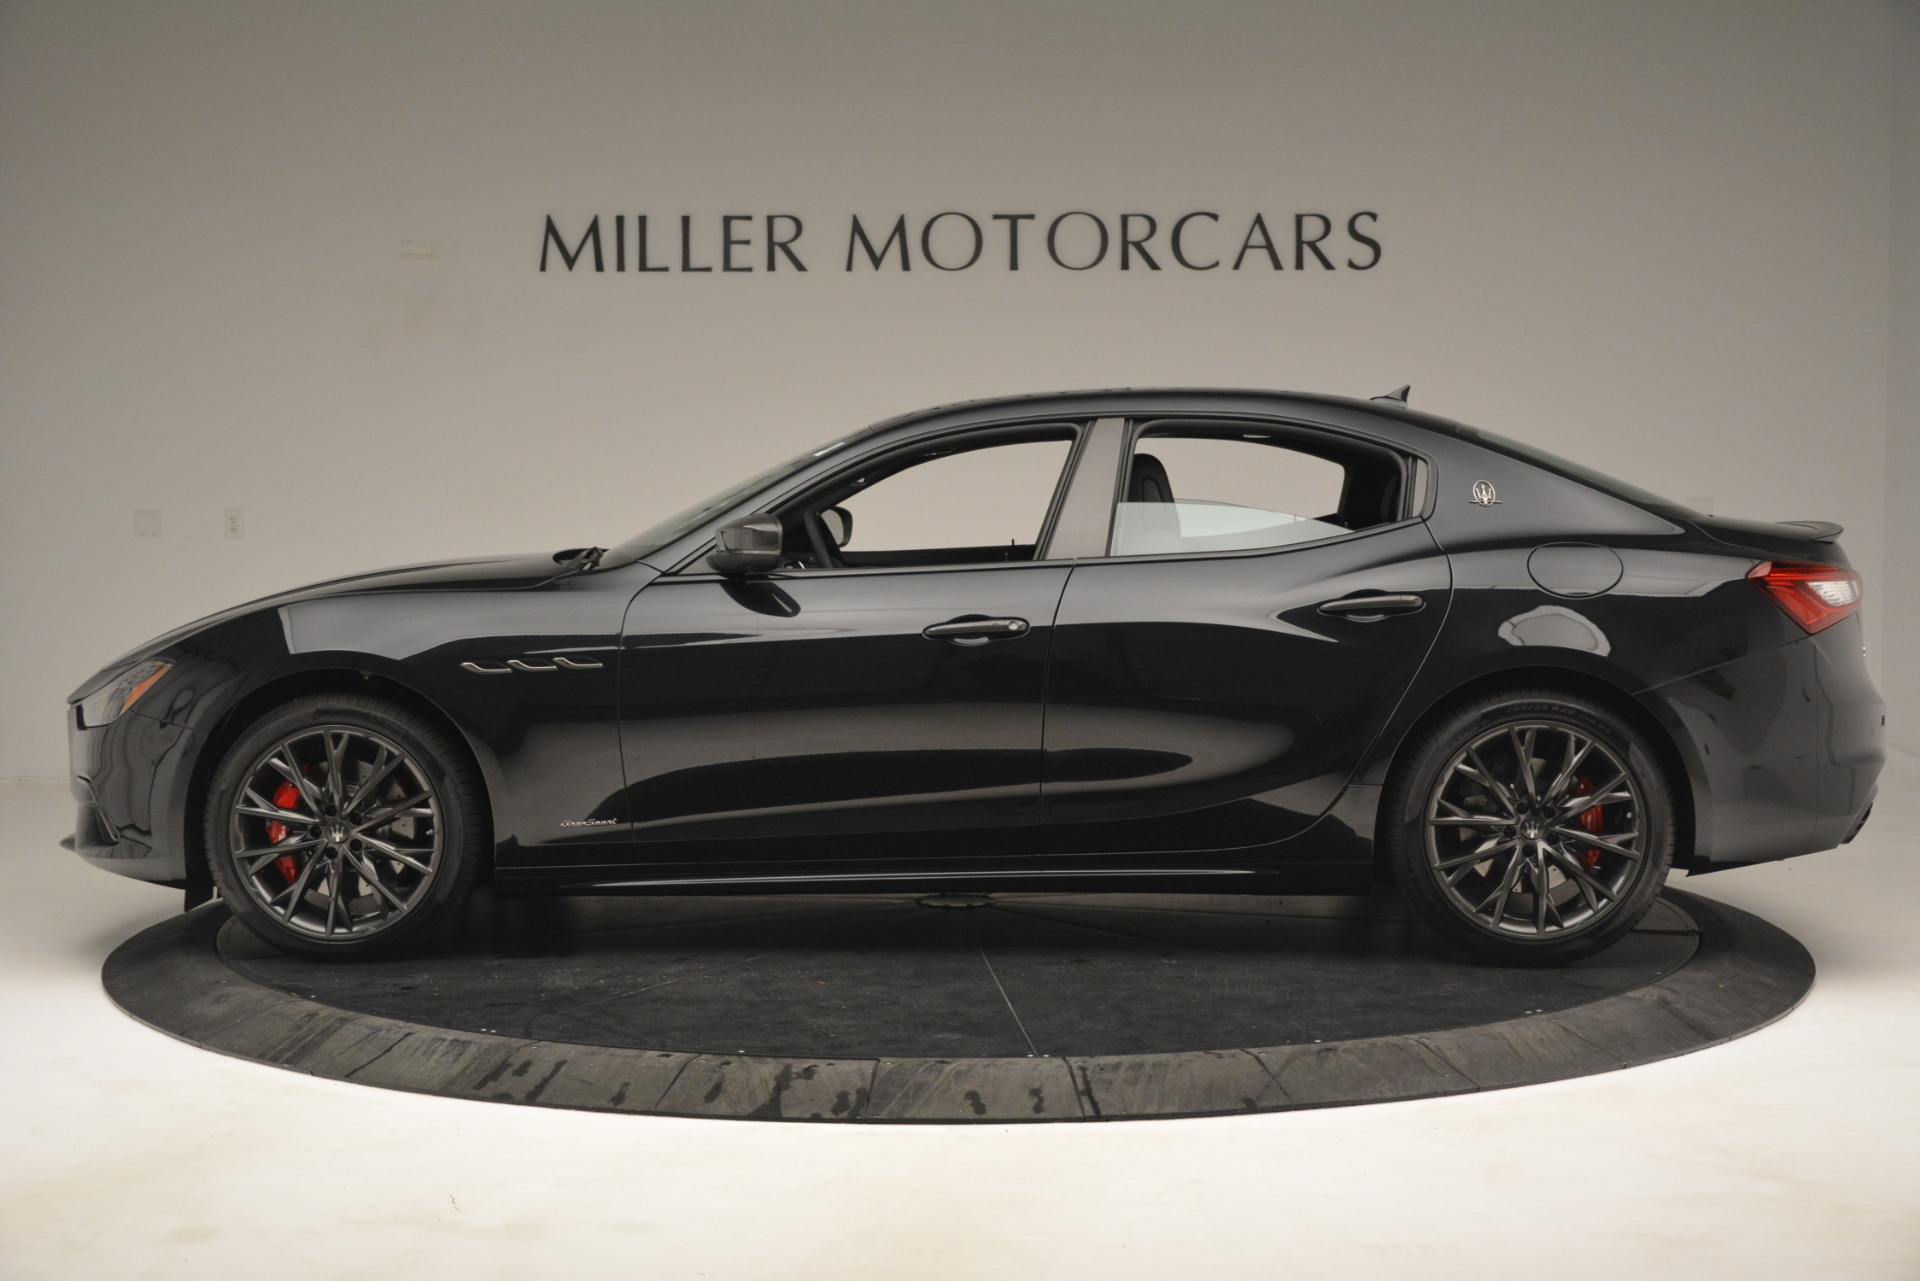 New 2019 Maserati Ghibli S Q4 GranSport For Sale In Westport, CT 2924_p3